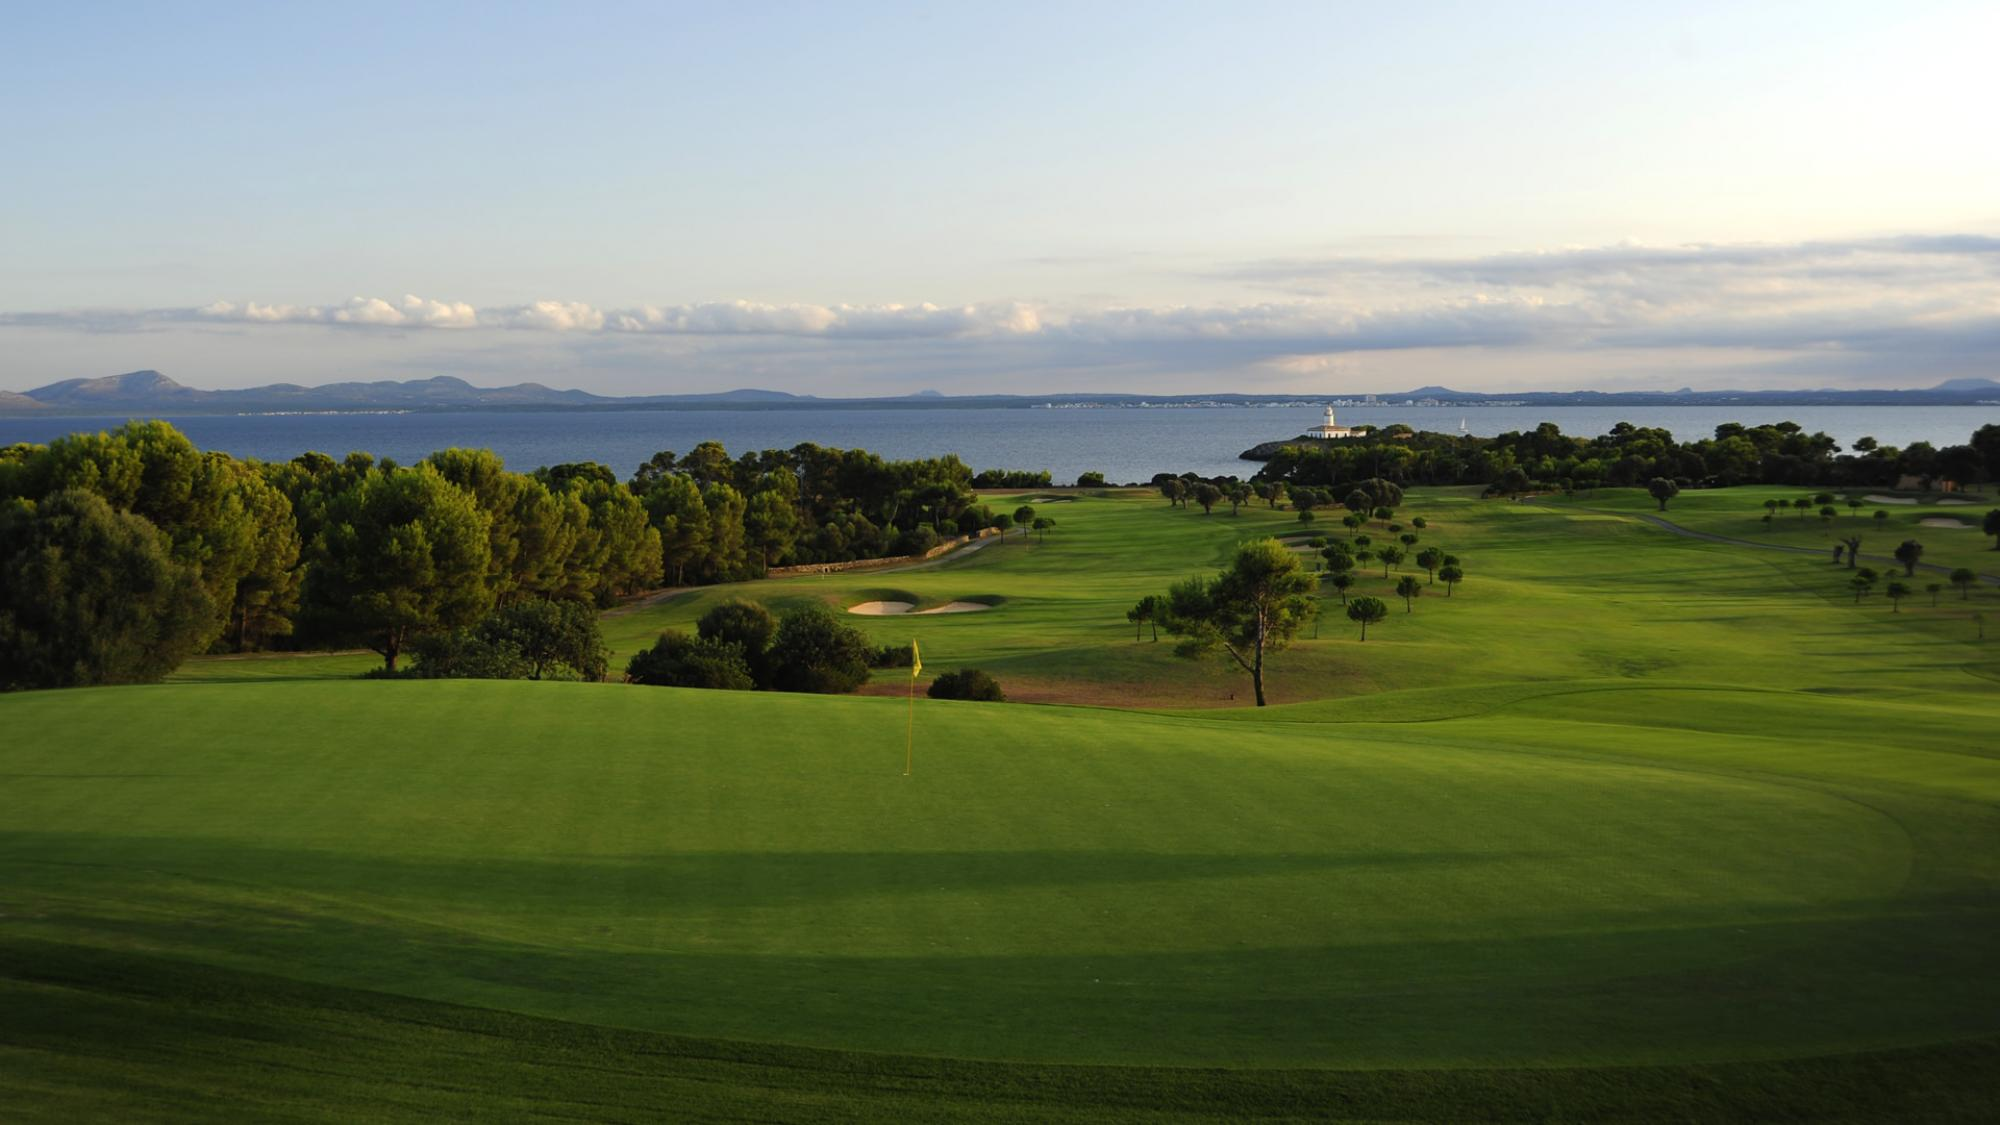 The Andratx Golf Course - Camp de Mar's beautiful golf course situated in spectacular Mallorca.